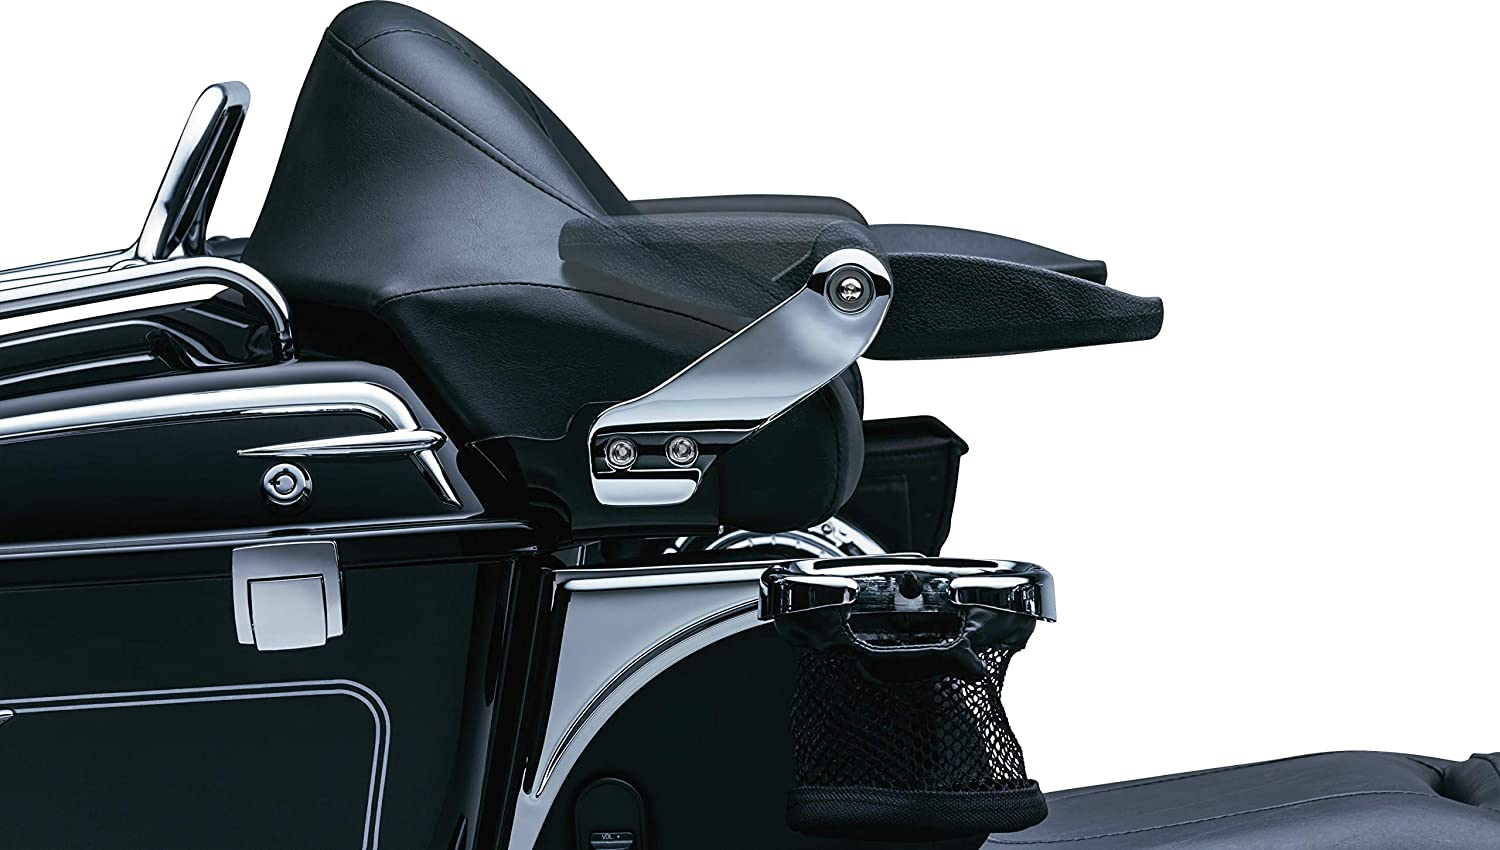 Chrome Kuryakyn 8958 Motorcycle Accessory Stealth Foldable Passenger Armrests for 1997-2013 Harley-Davidson Motorcycles